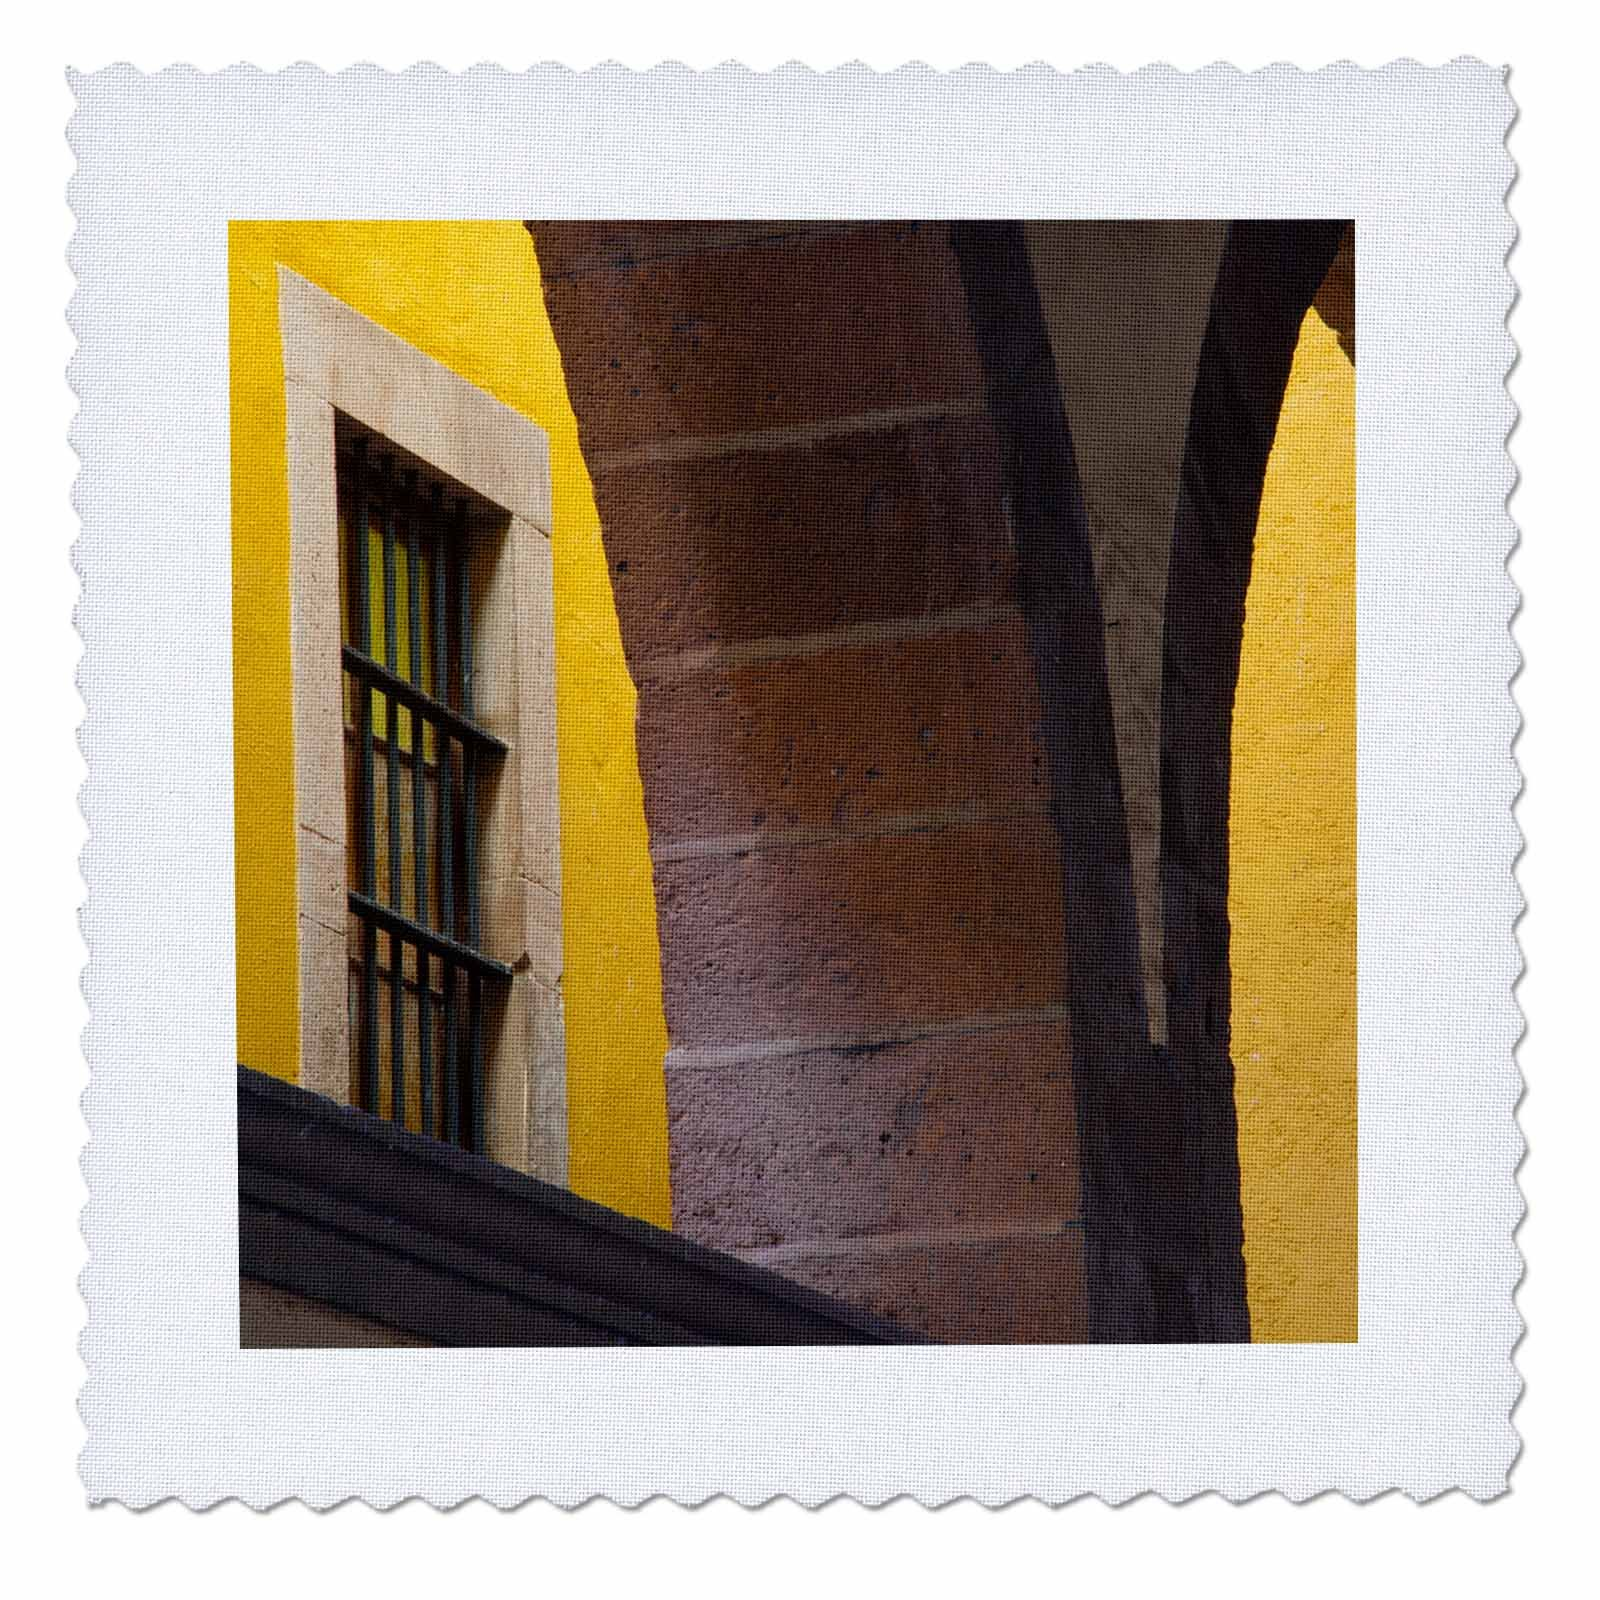 3dRose Danita Delimont - Architecture - Mexico, Guanajuato, Arched columns against a yellow wall with window. - 22x22 inch quilt square (qs_258503_9)